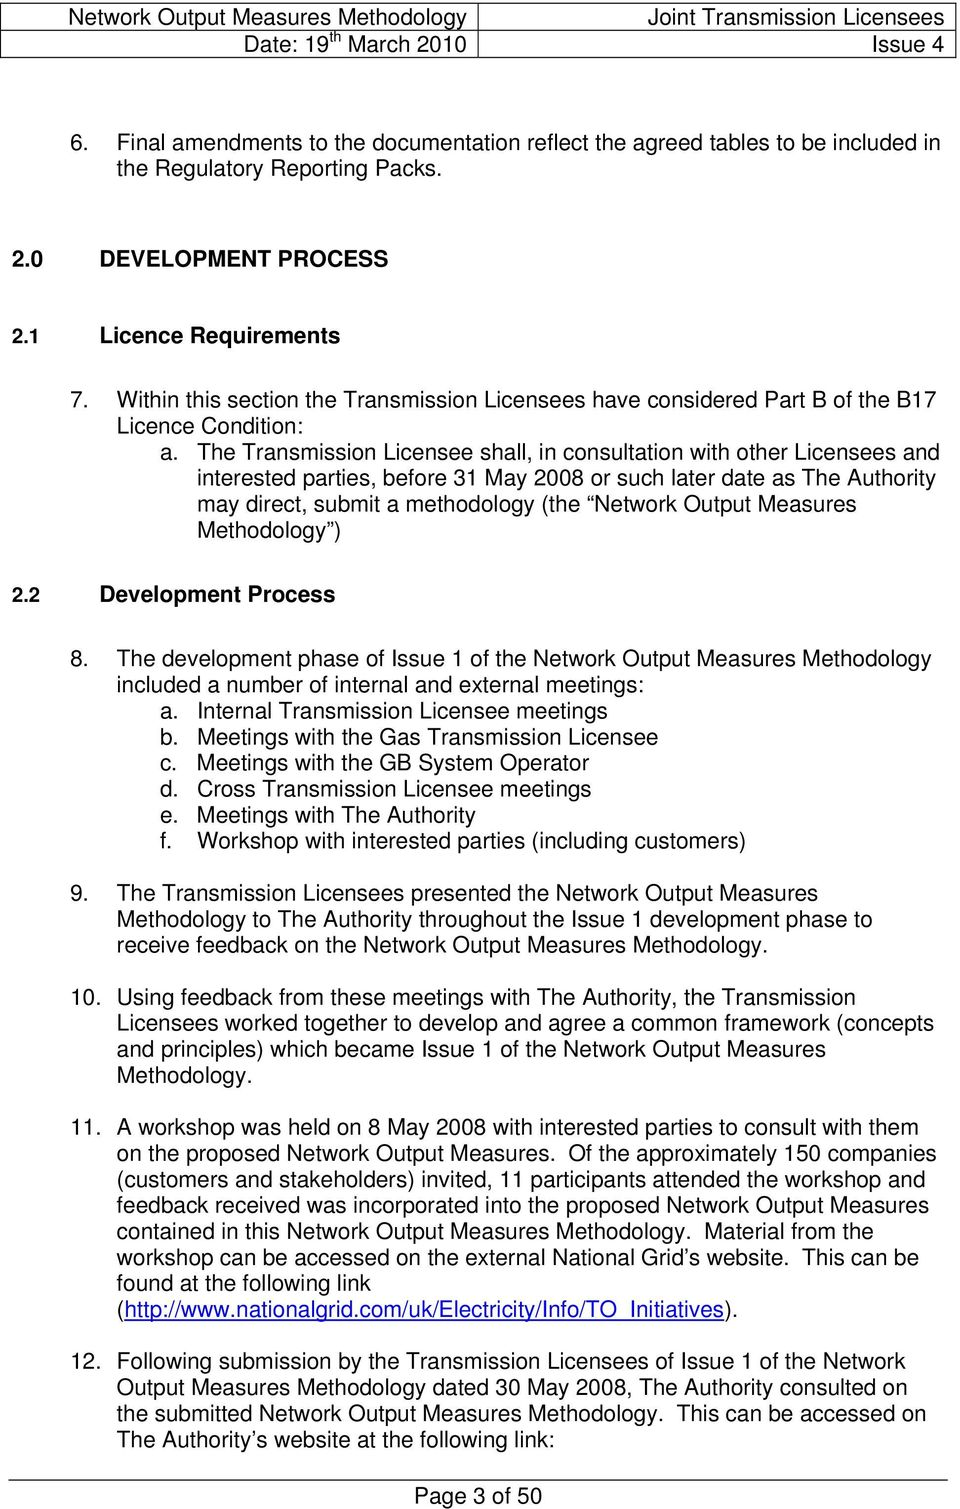 The Transmission Licensee shall, in consultation with other Licensees and interested parties, before 31 May 2008 or such later date as The Authority may direct, submit a methodology (the Network